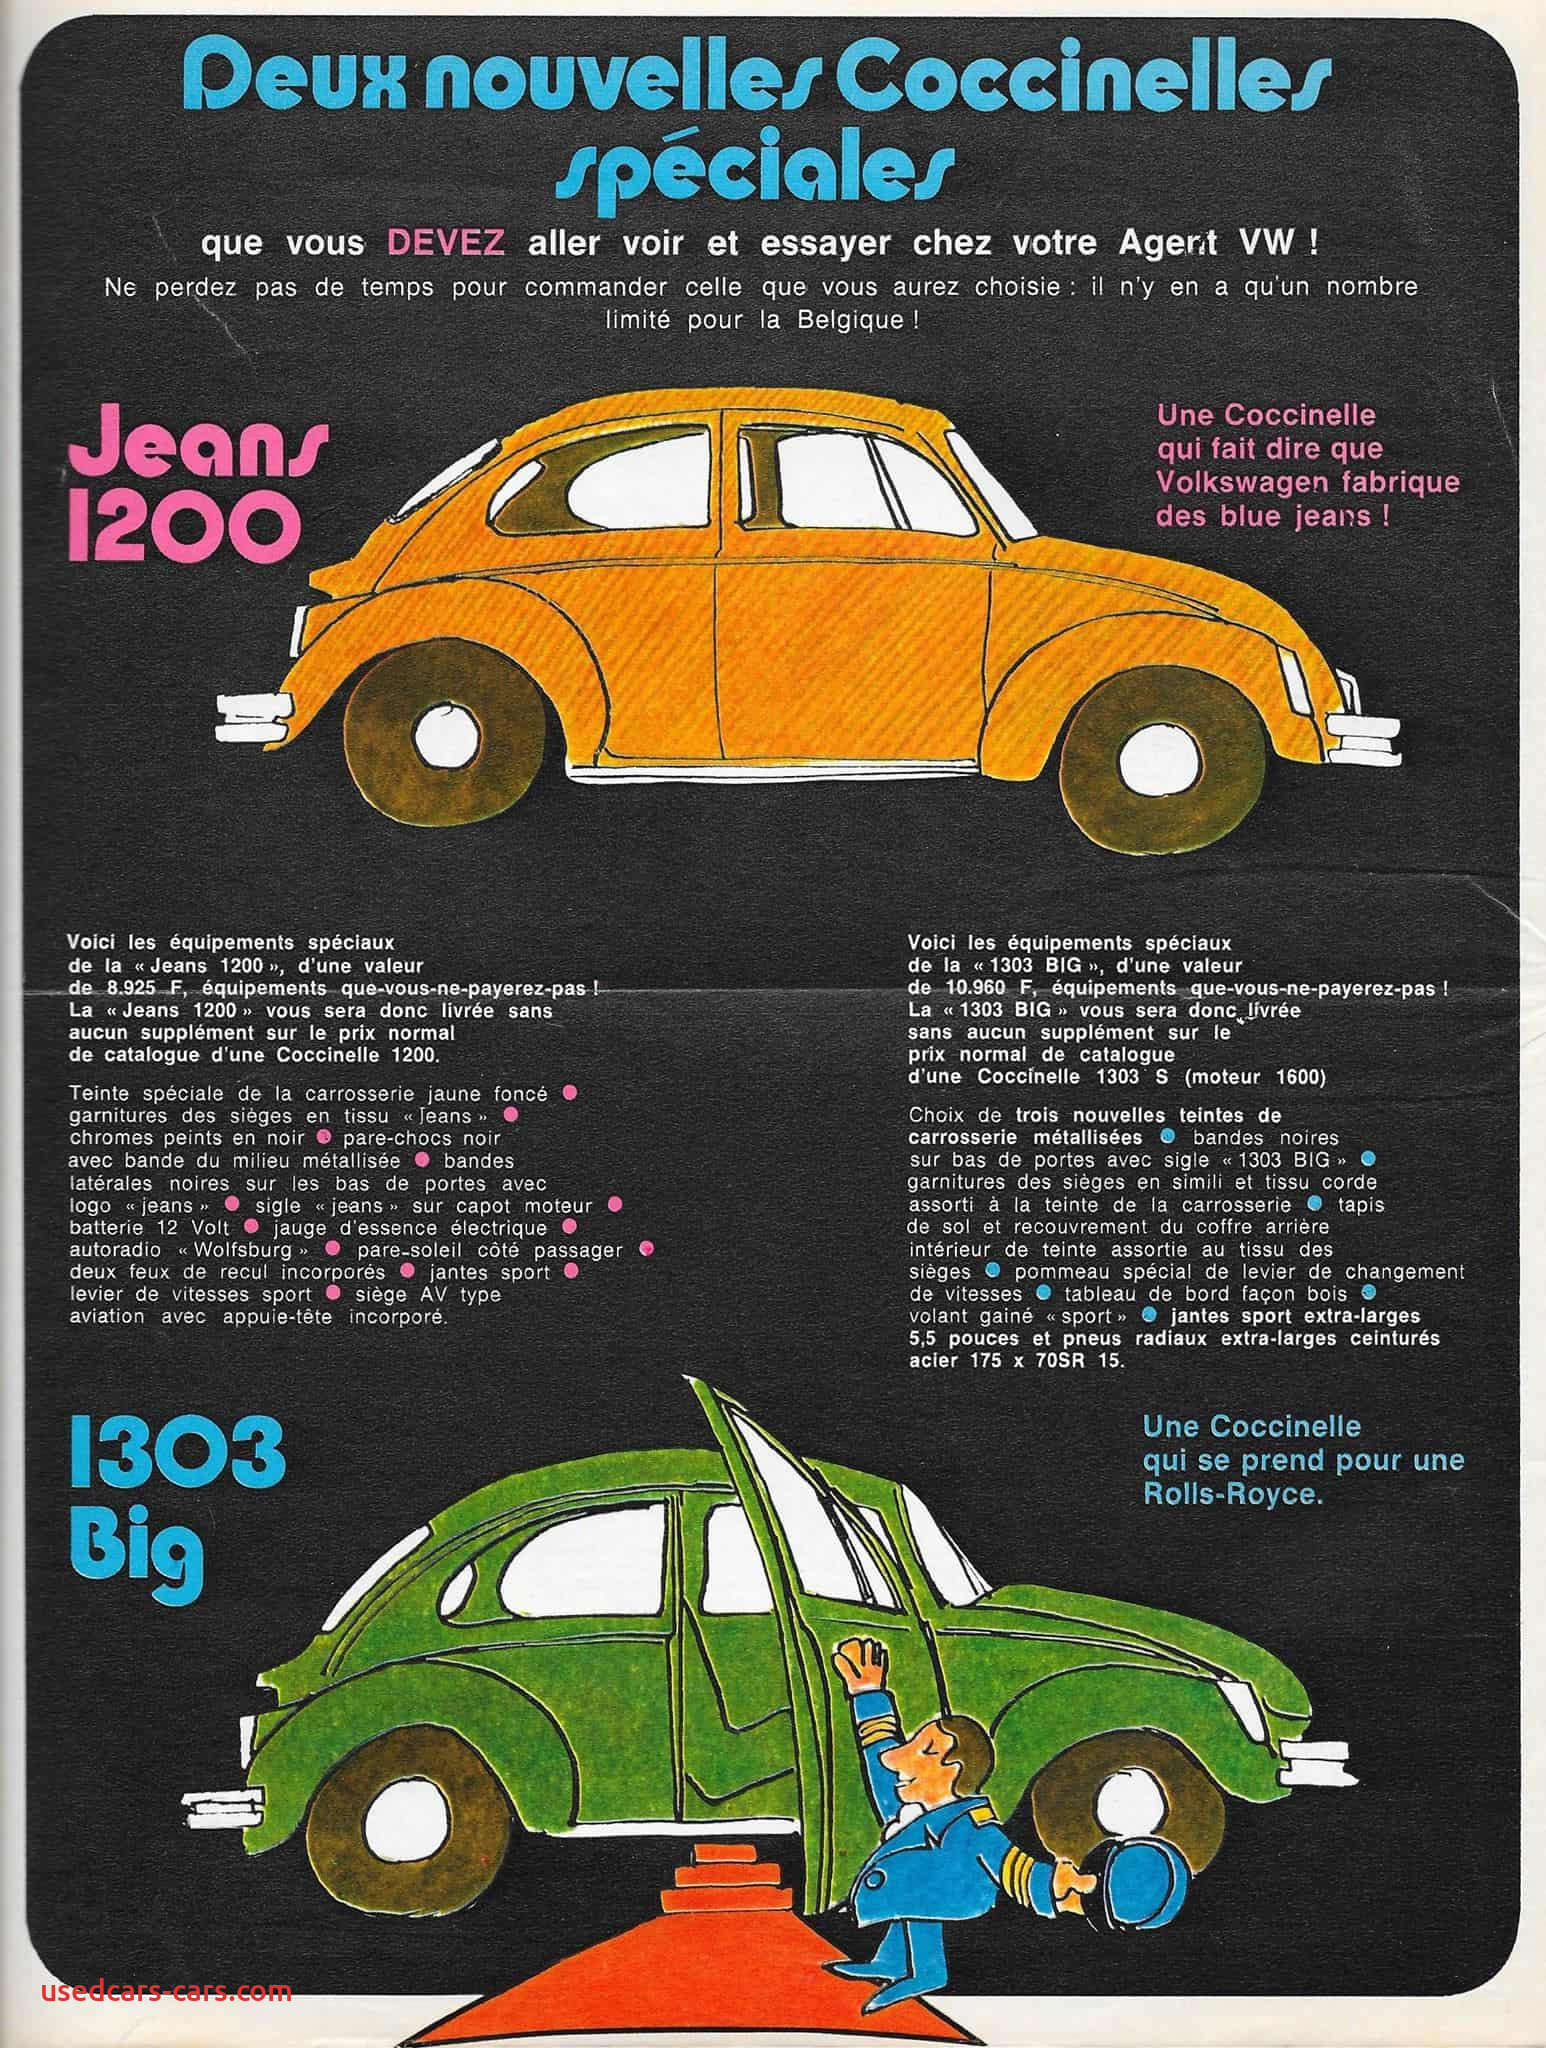 For Sale Volkswagen Beetle Philippines New 1974 Big Beetle Sebeetles